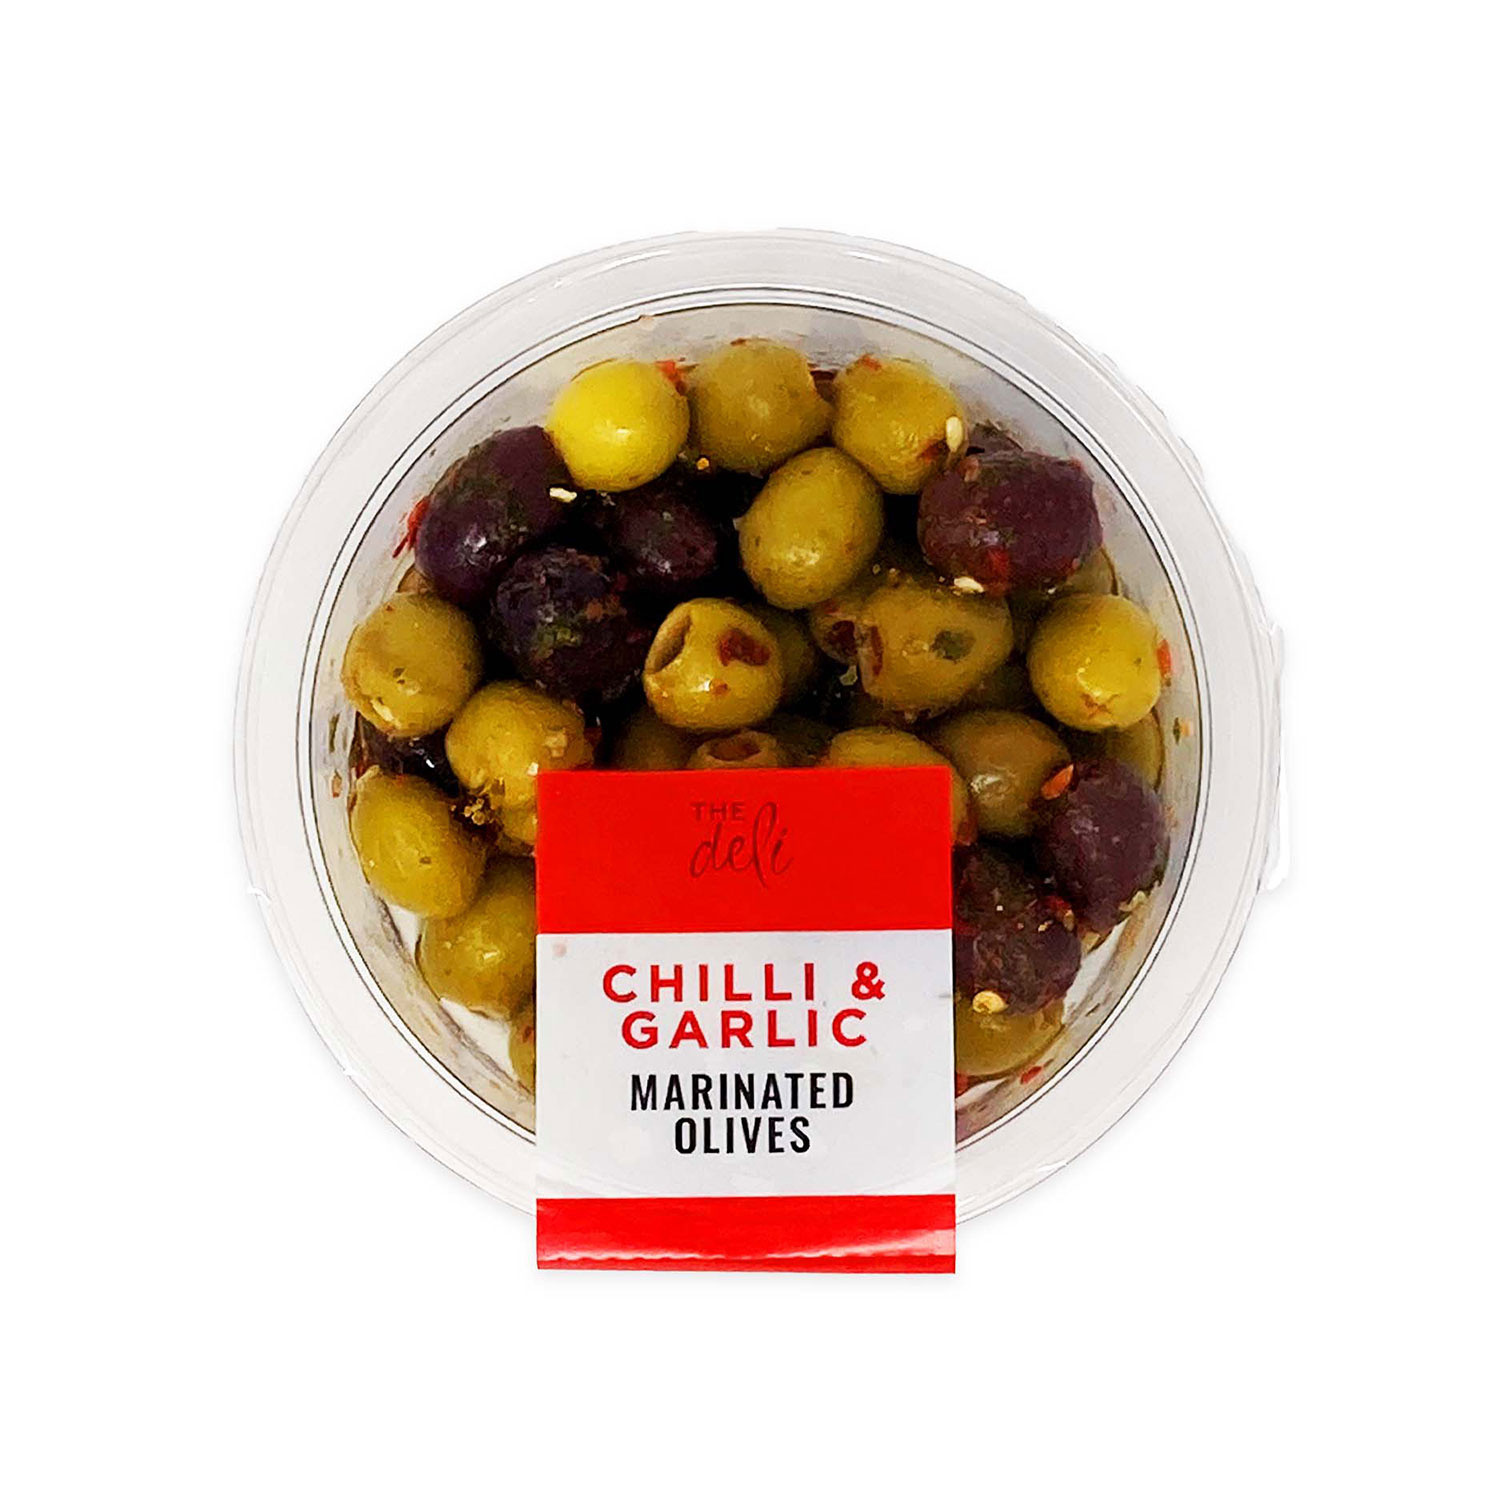 Chilli & Garlic Marinated Olives